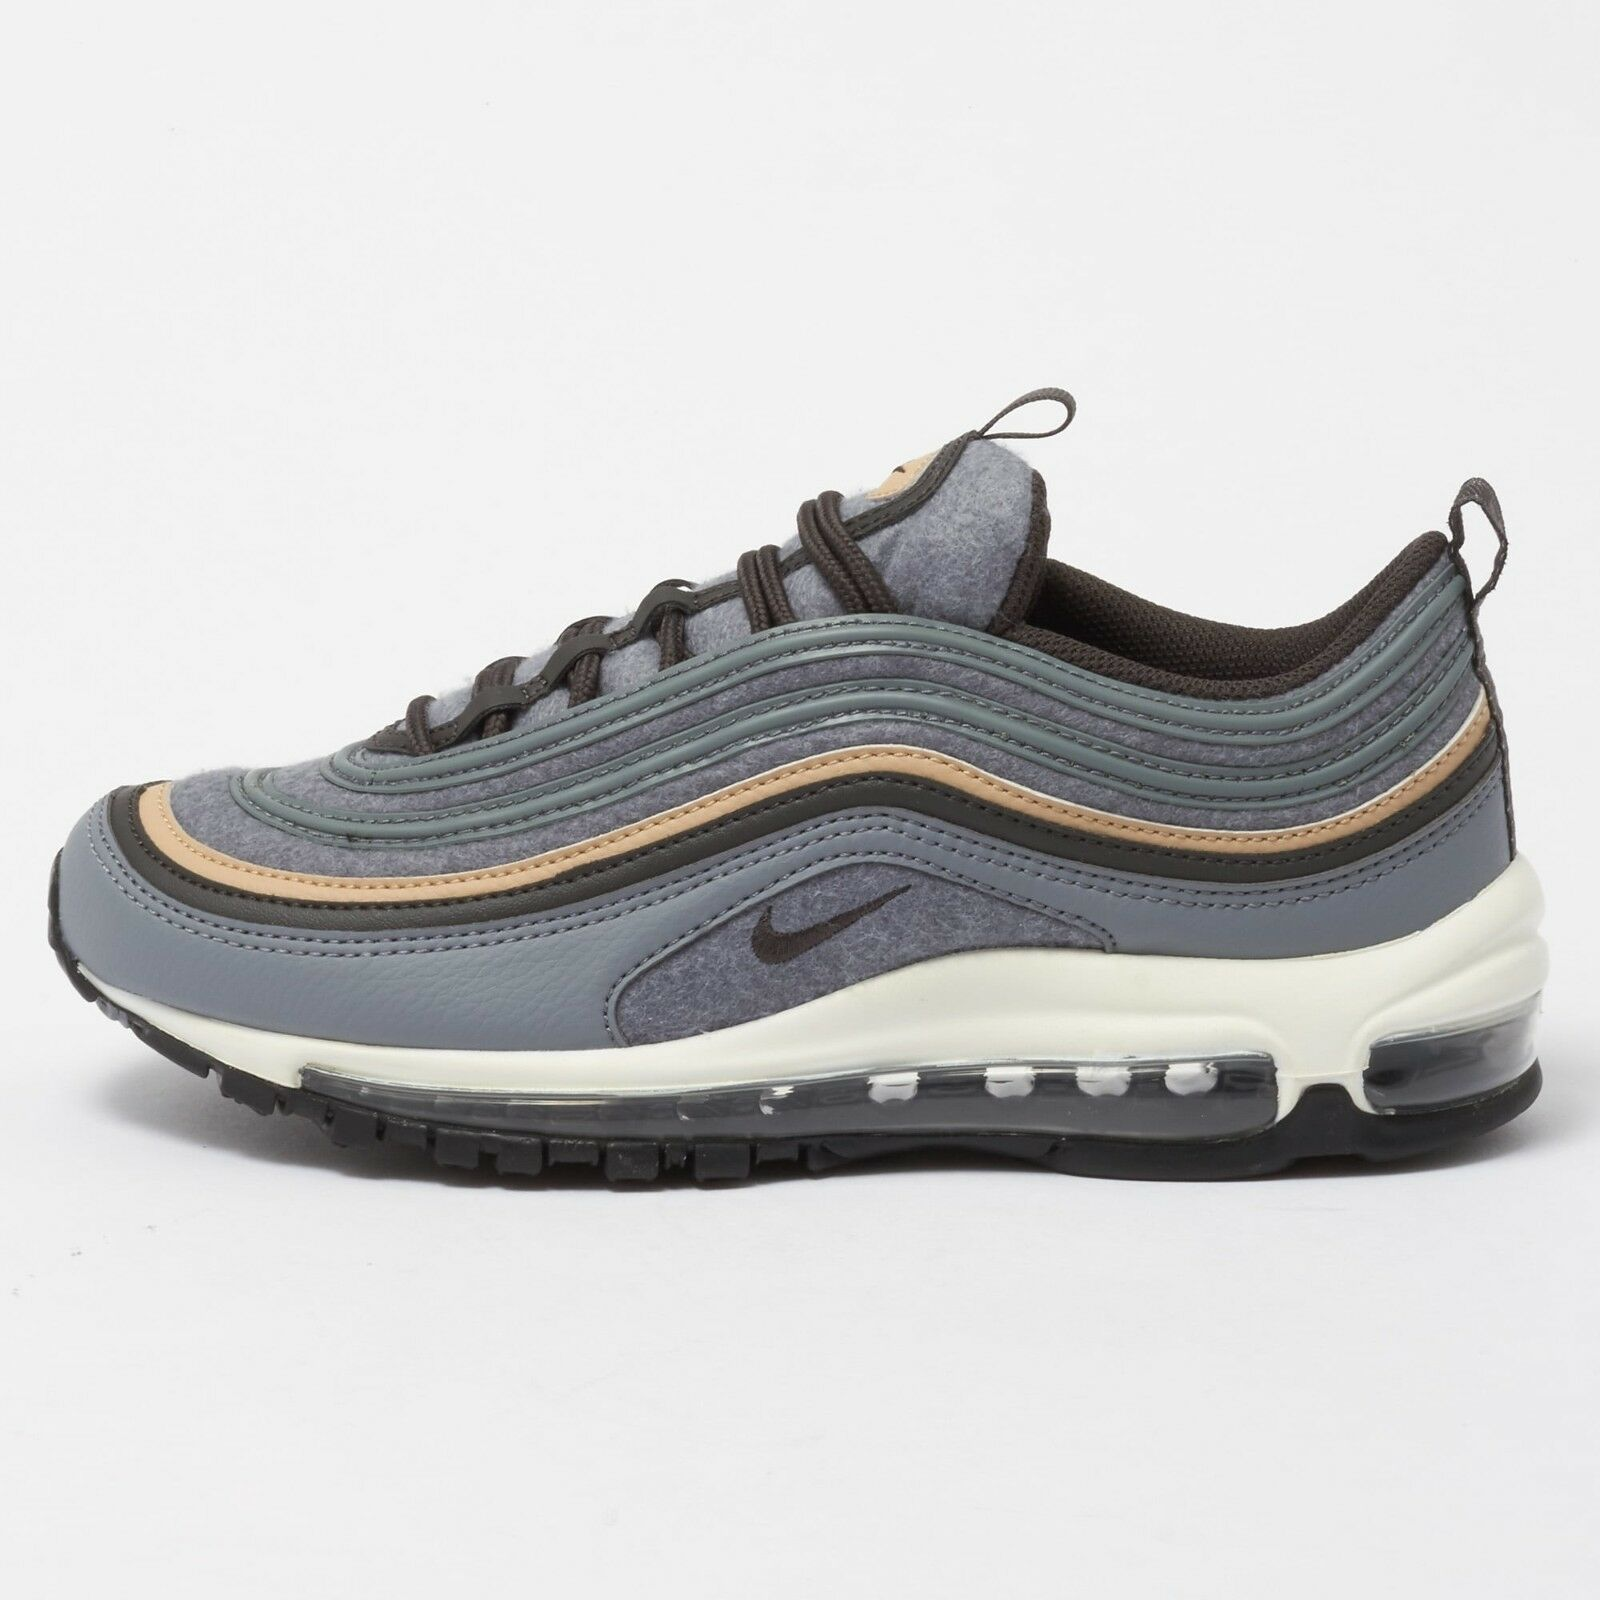 NIKE NIKE AIR MAX '97 Cool Gray Deep Pewter Brown OG '17 312834-003 plus 97 f1 Seasonal price cuts, discount benefits